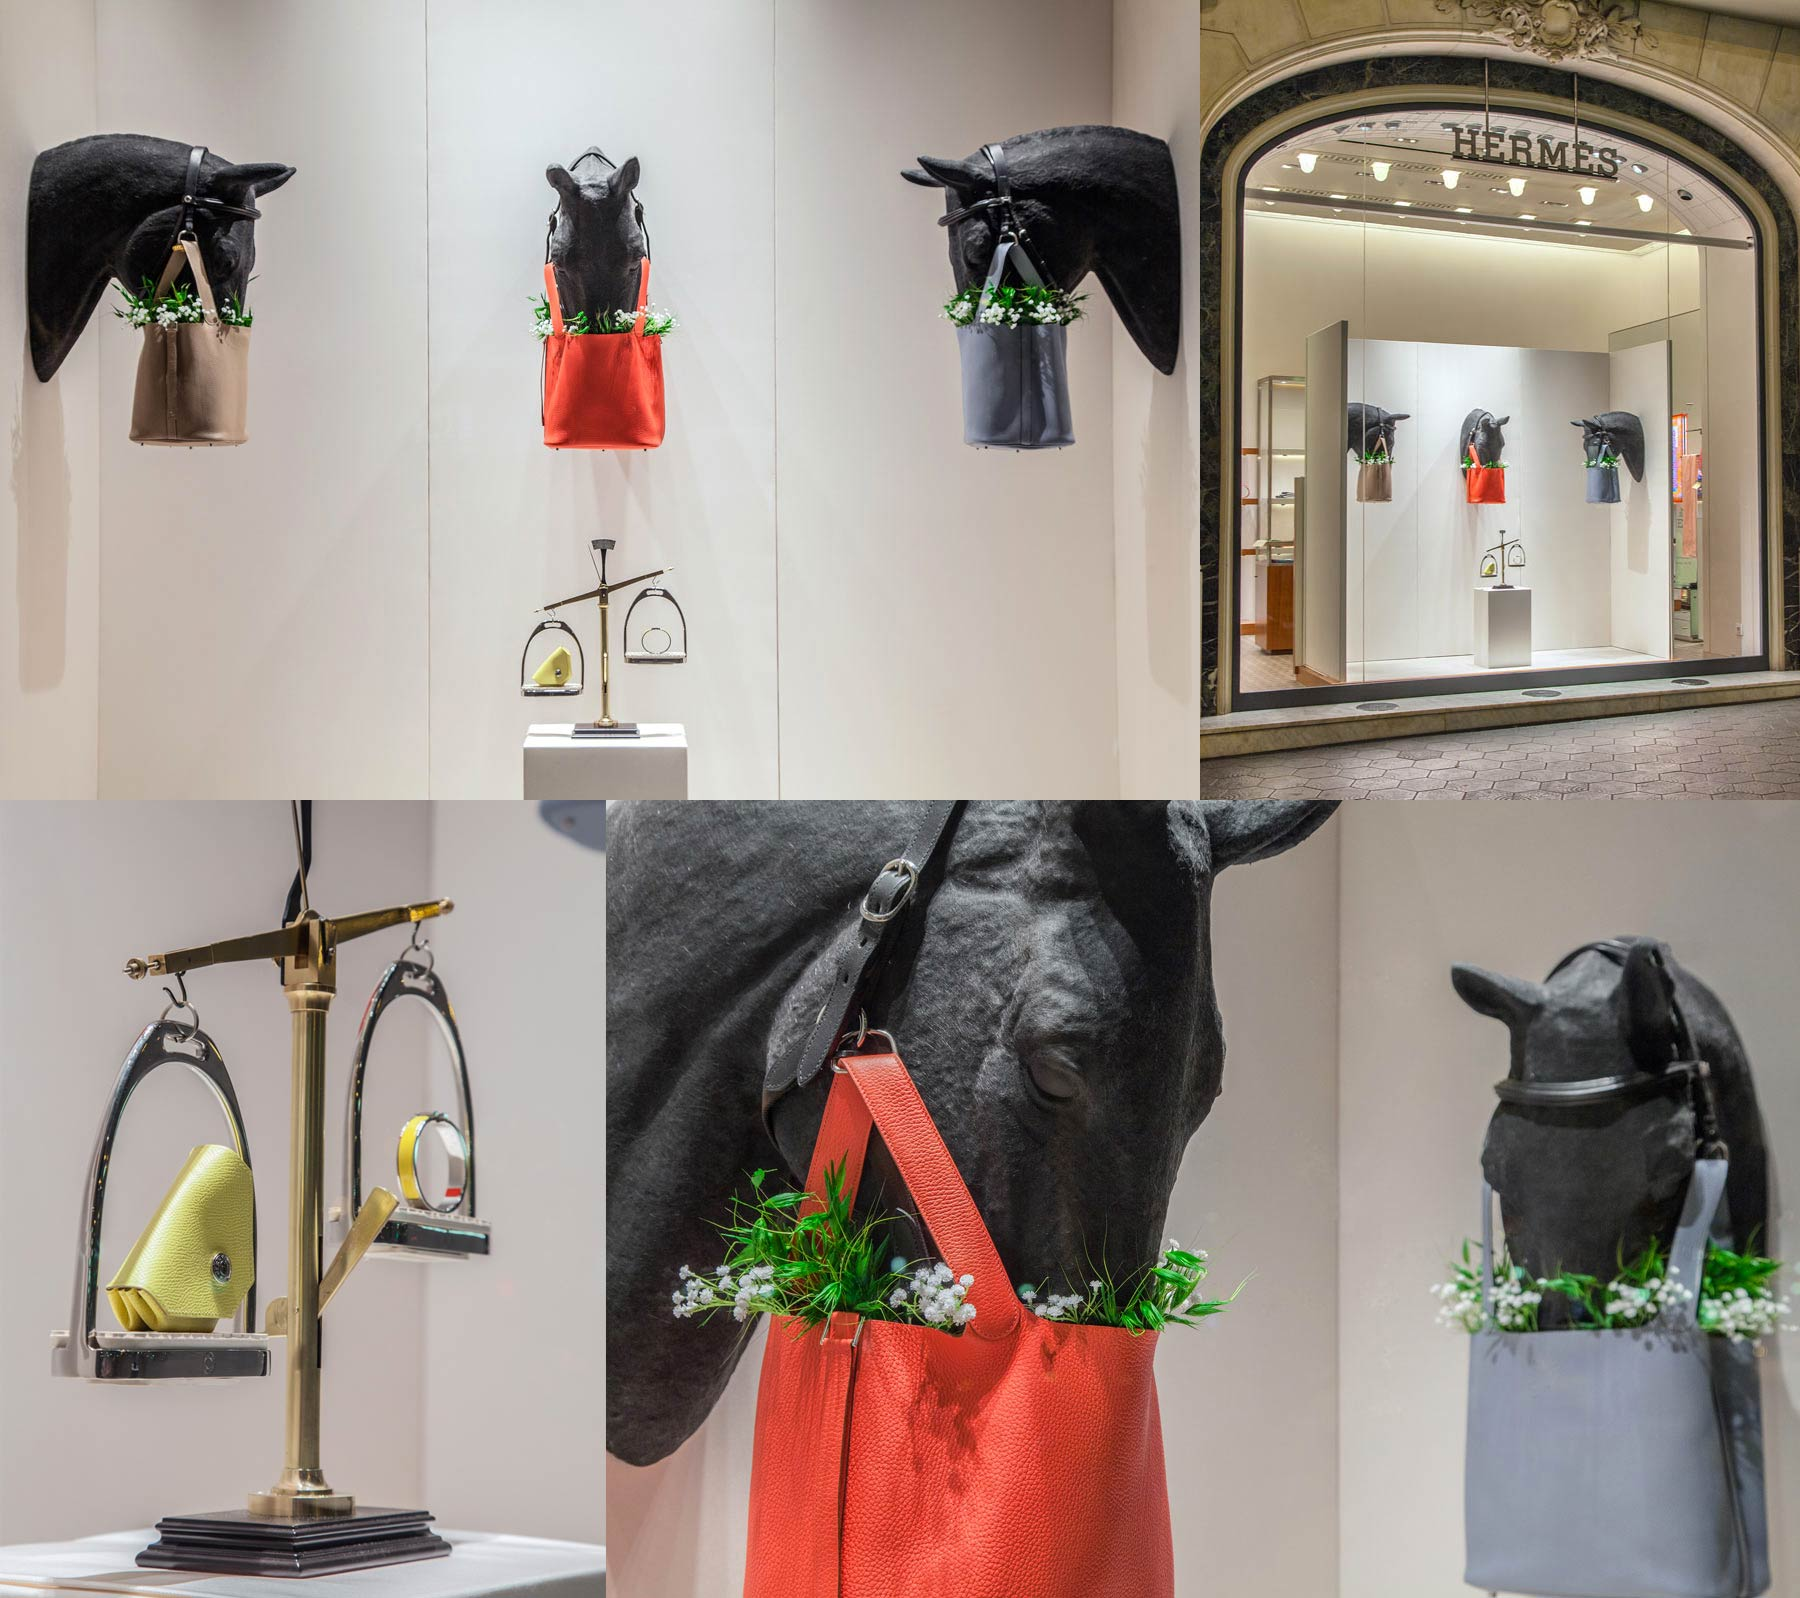 Hermés Display with false horse heads coming out of the wall, eating out of beautiful leather bags